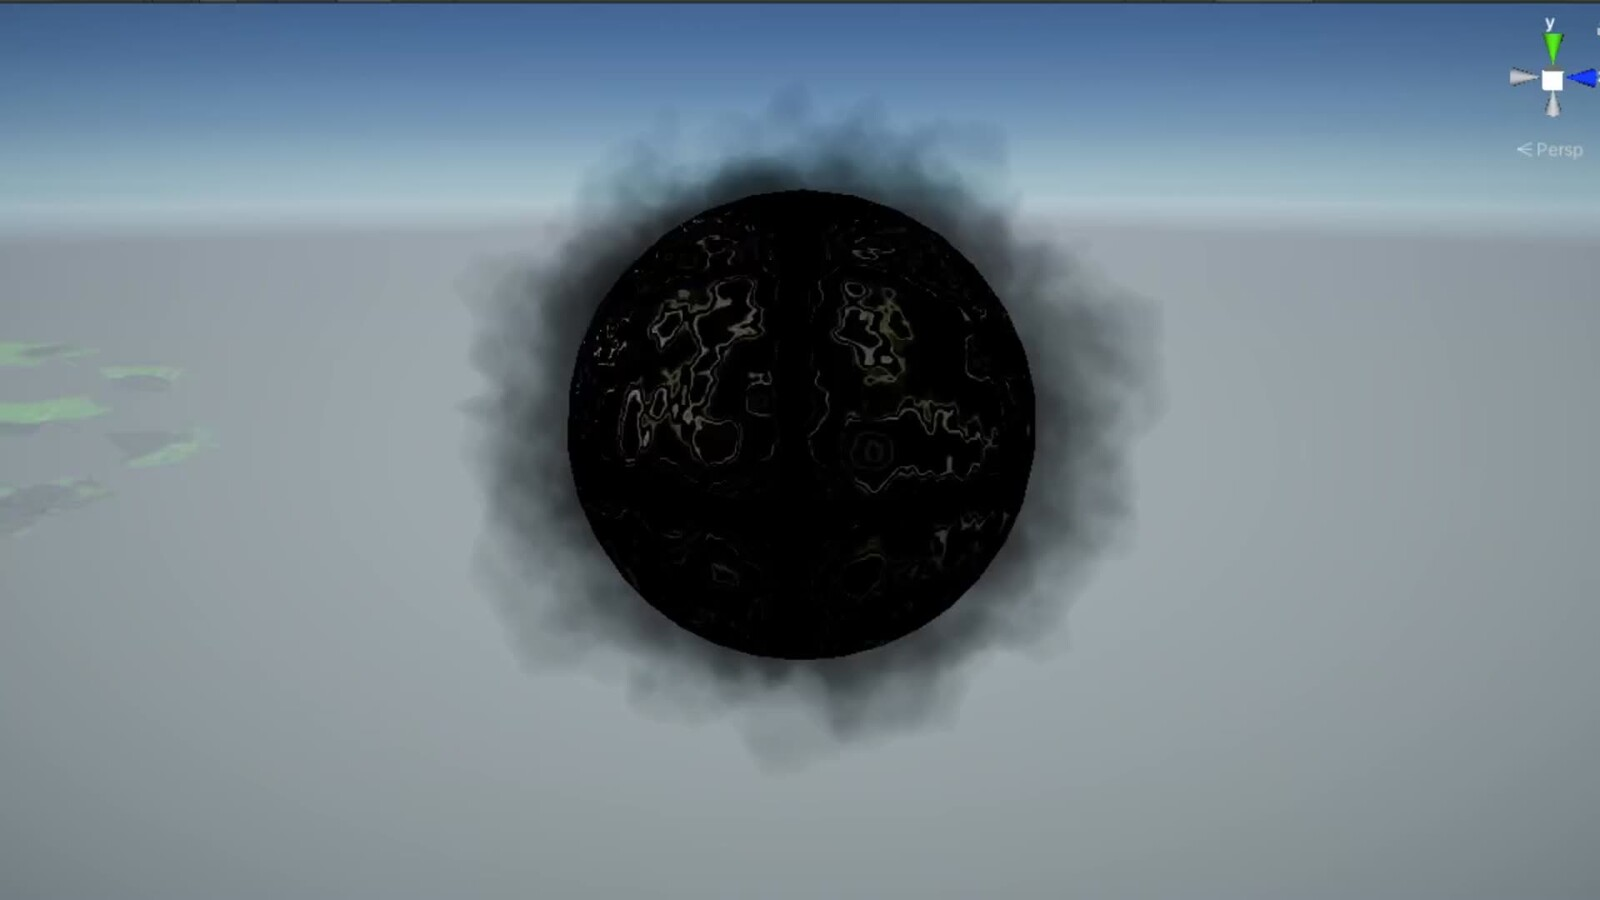 Shaders&Particles for GGJ 2021